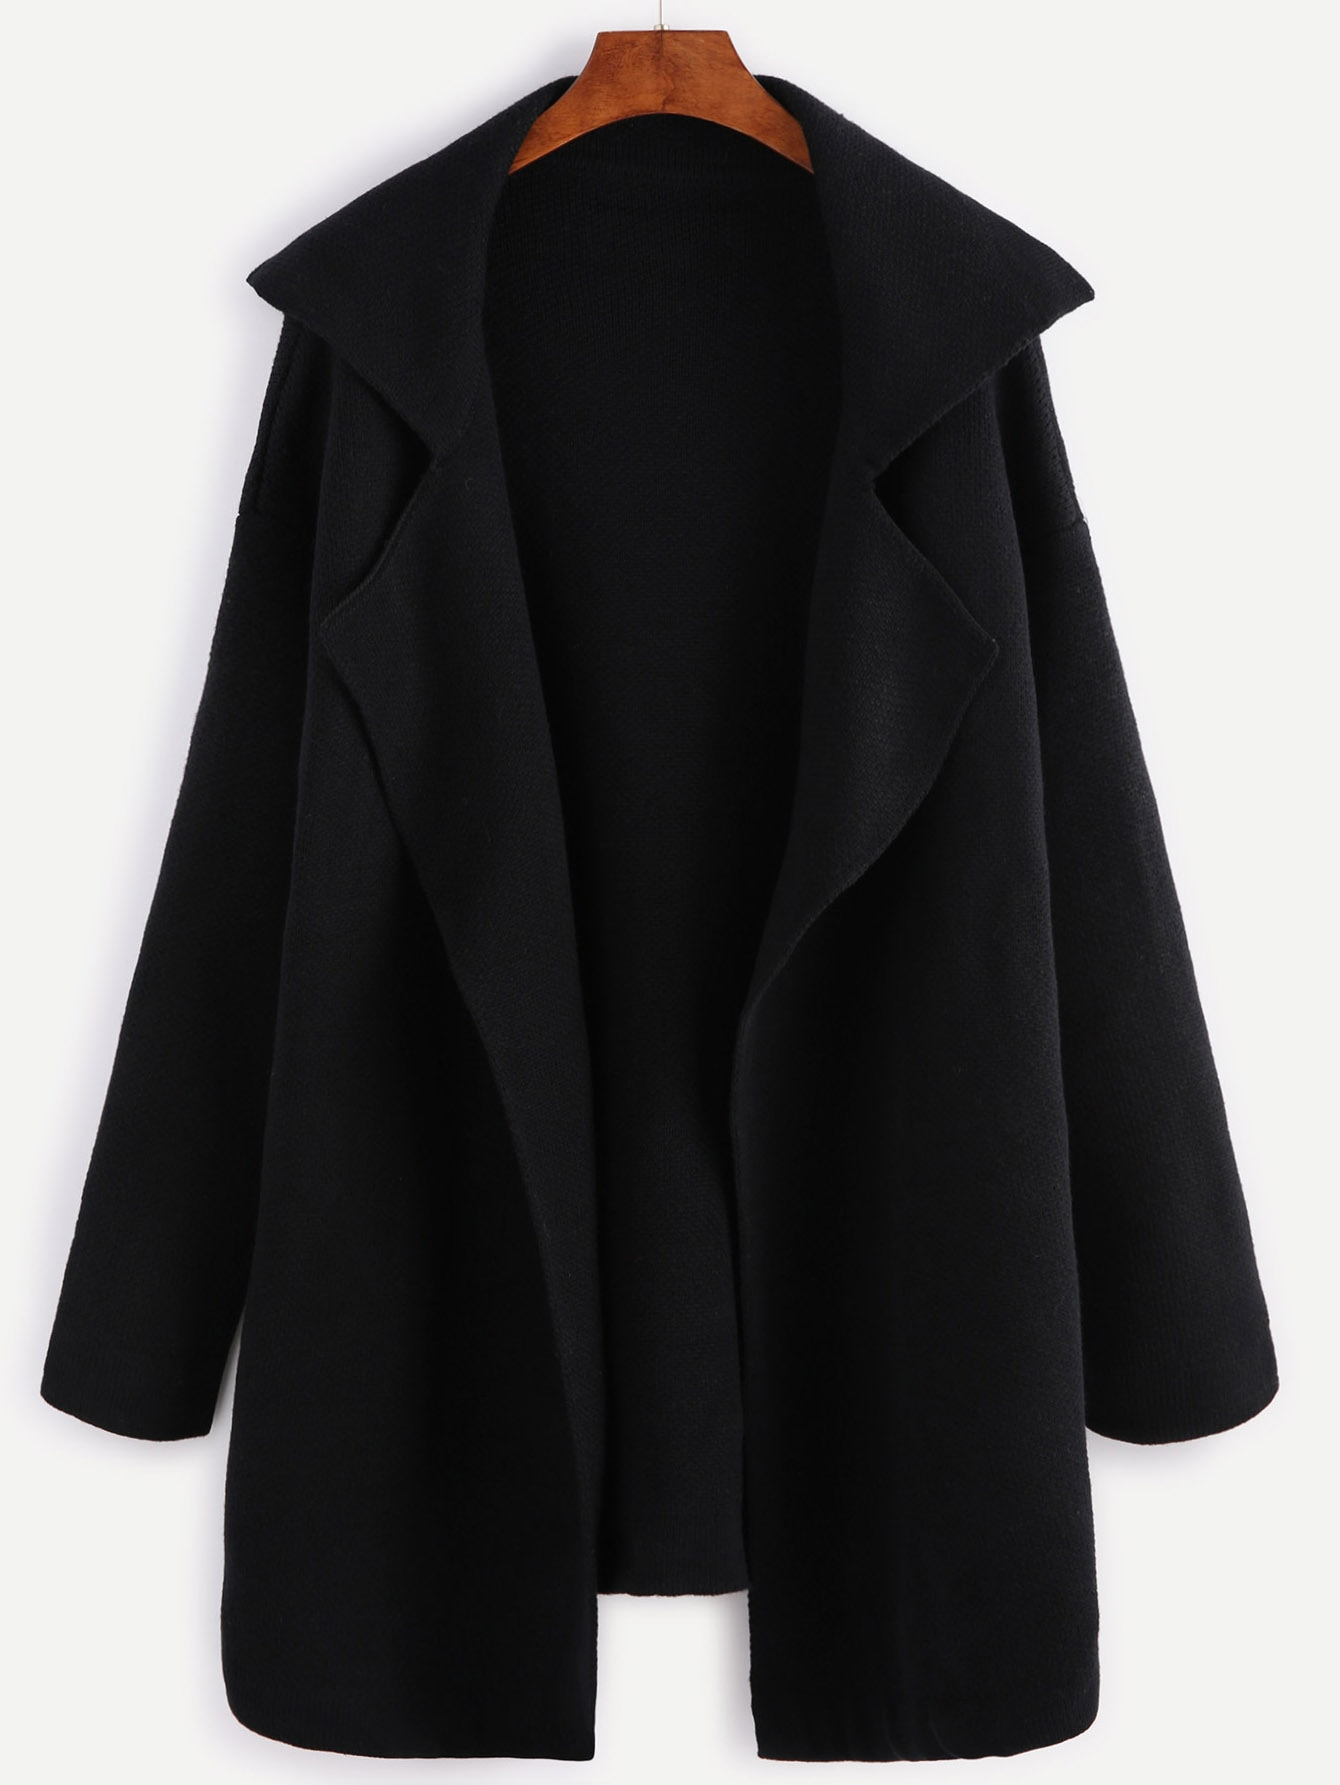 Black Notch Collar Open Front Sweater Coat black open front sleeveless cape coat